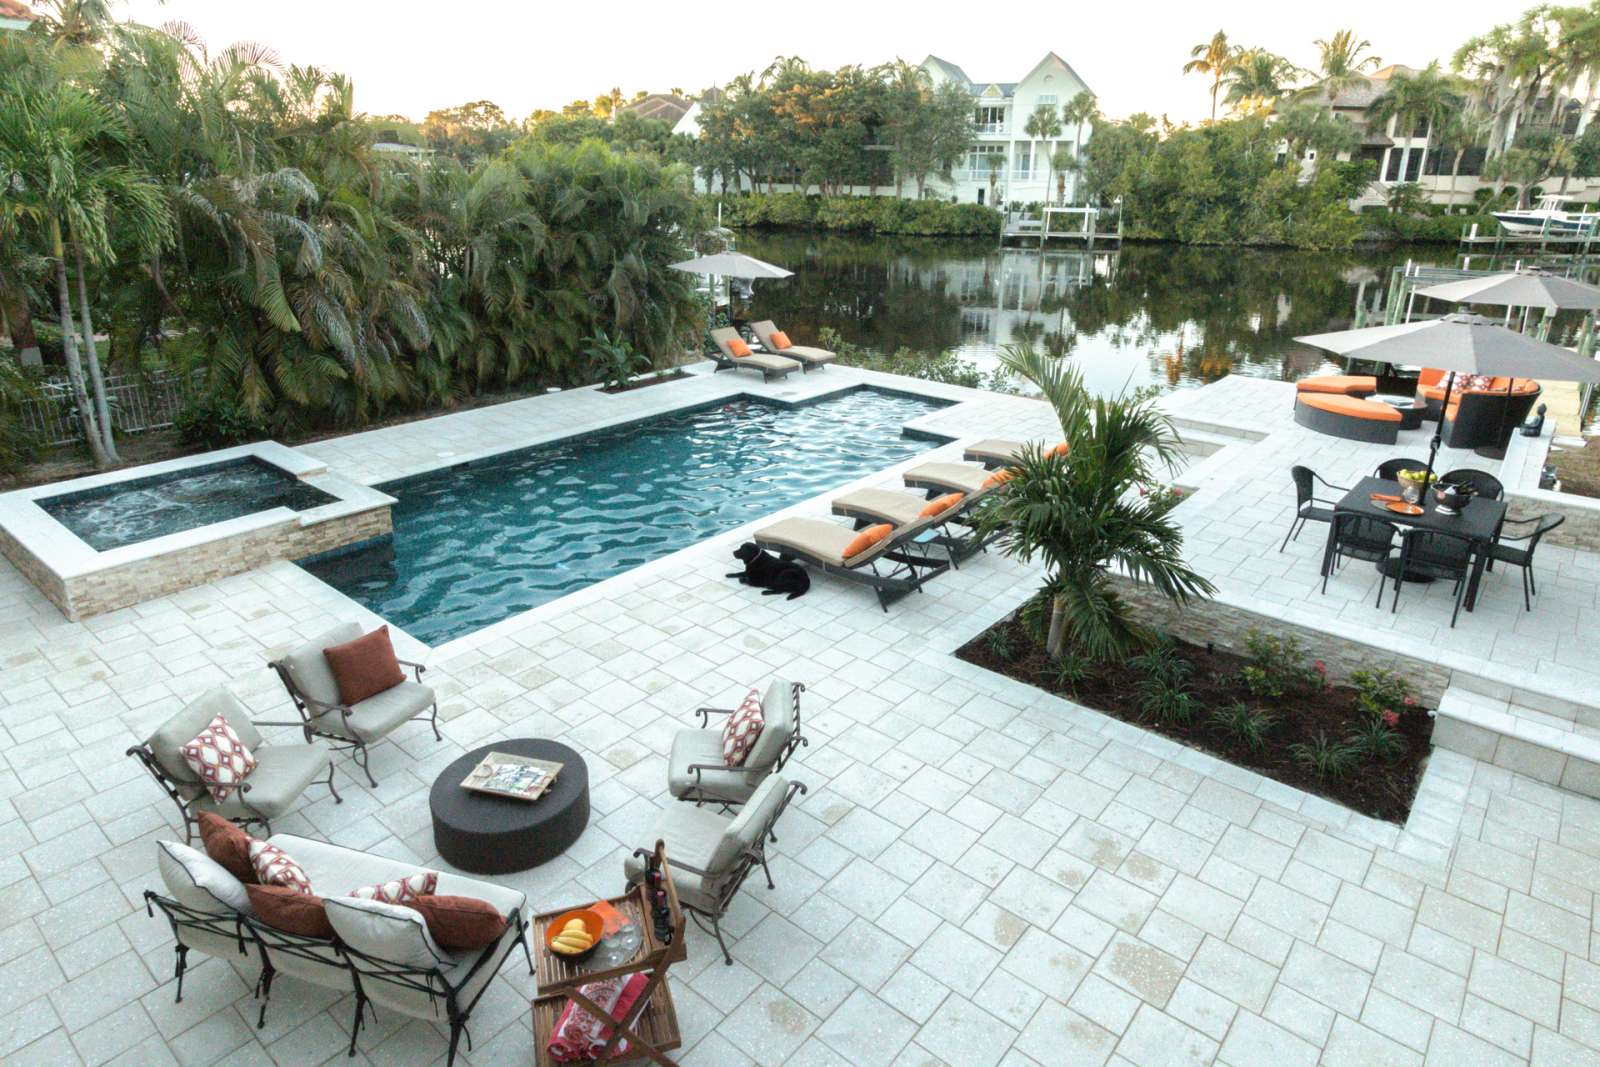 Bonita Springs Vacation Rental | Professionally Decorated Waterfront Home  W/htd.pool,spa, Dock  Less Than 2 Miles To Barefoot Beach!